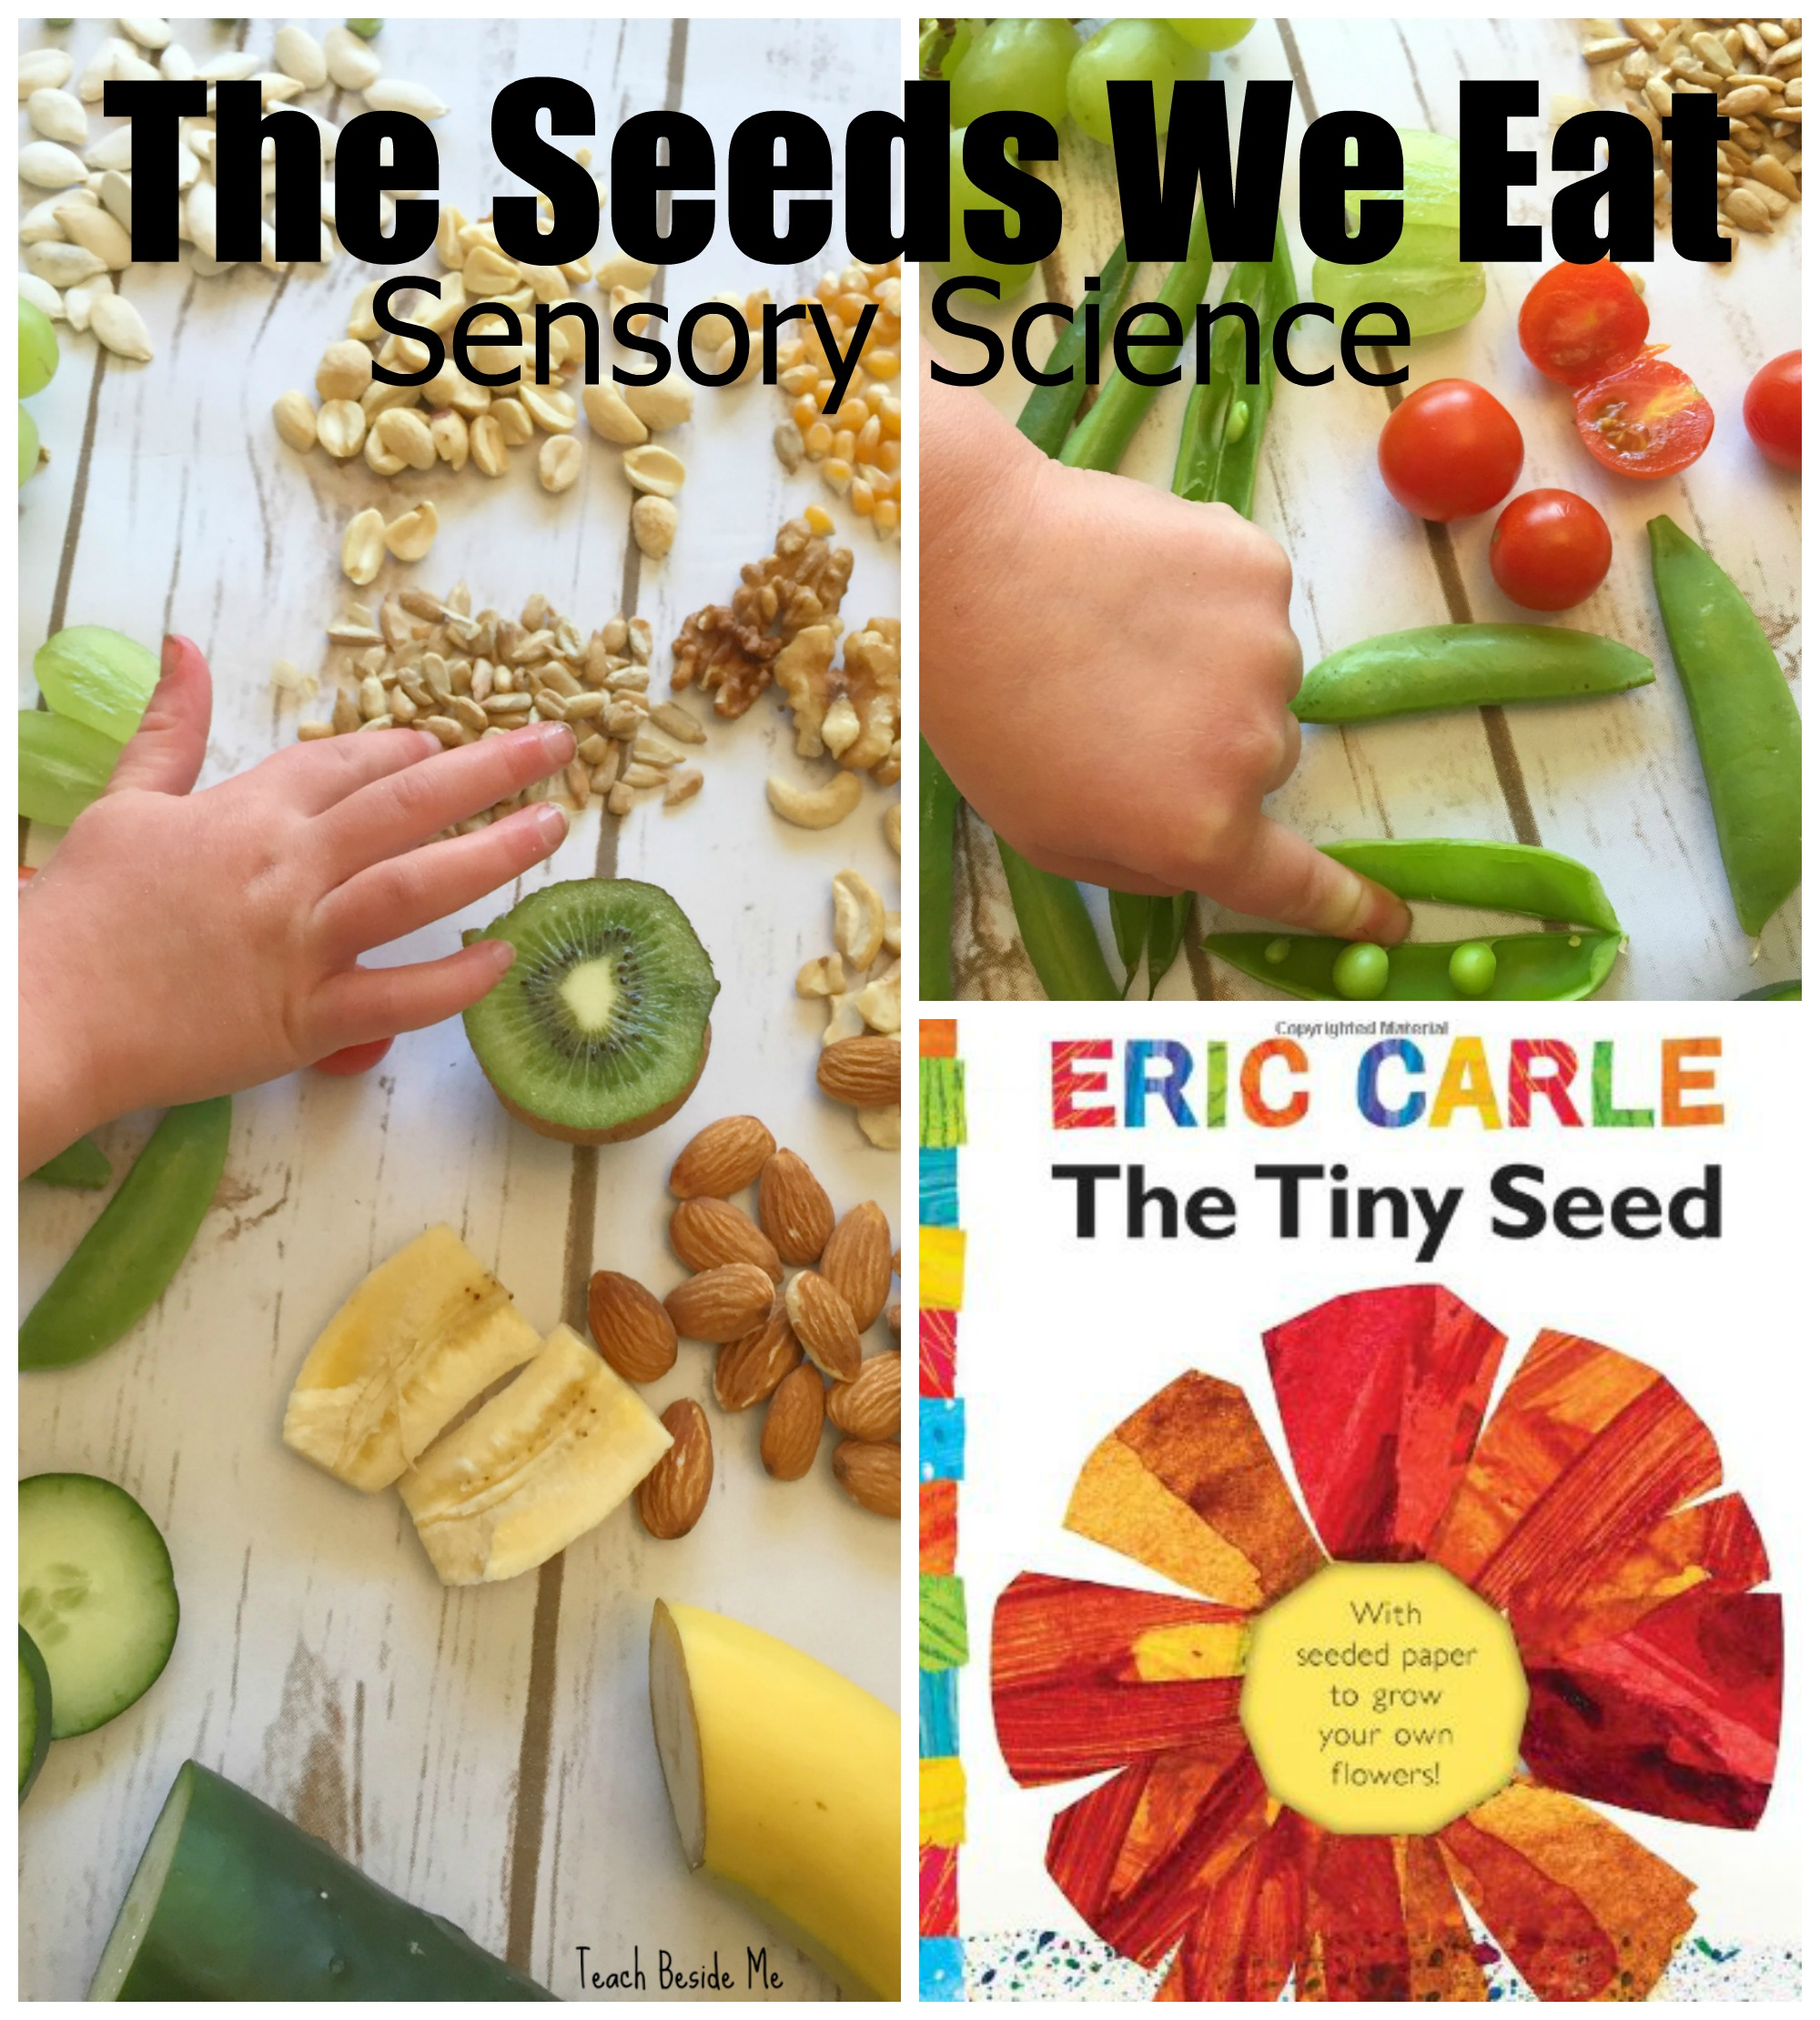 the seeds we eat- nature sensory science for kids. Great with Eric Carle's Tiny Seed book